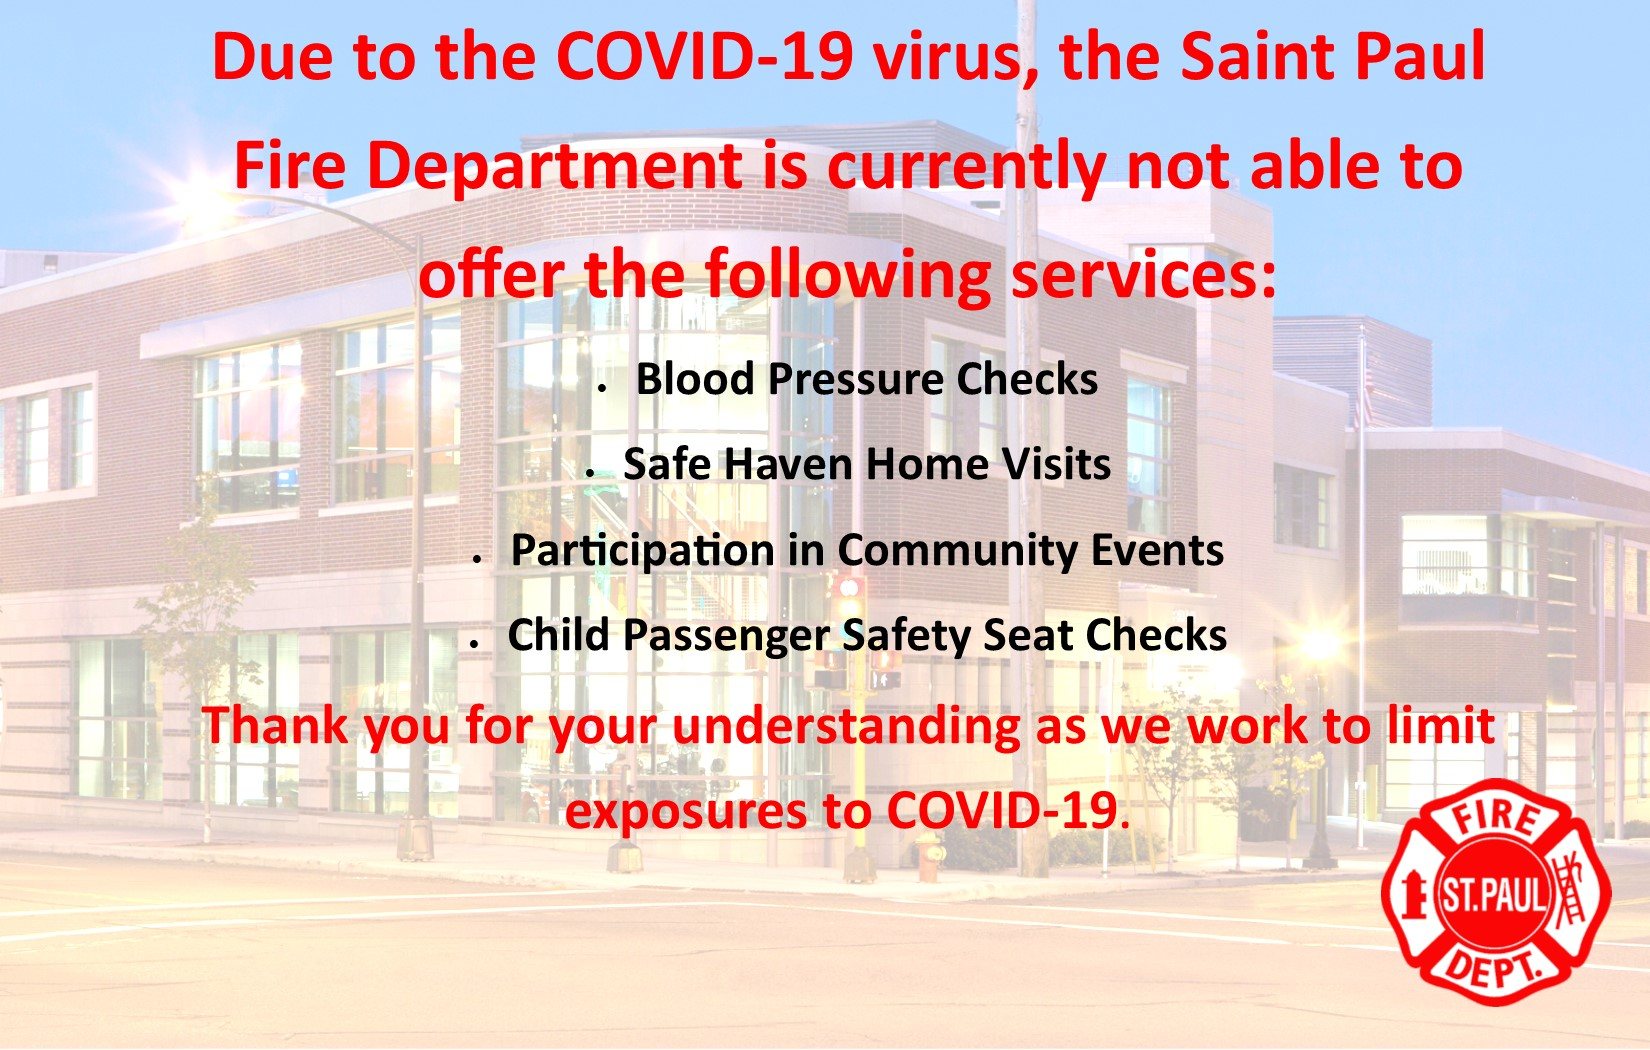 COVID-19 Svc not currently offered